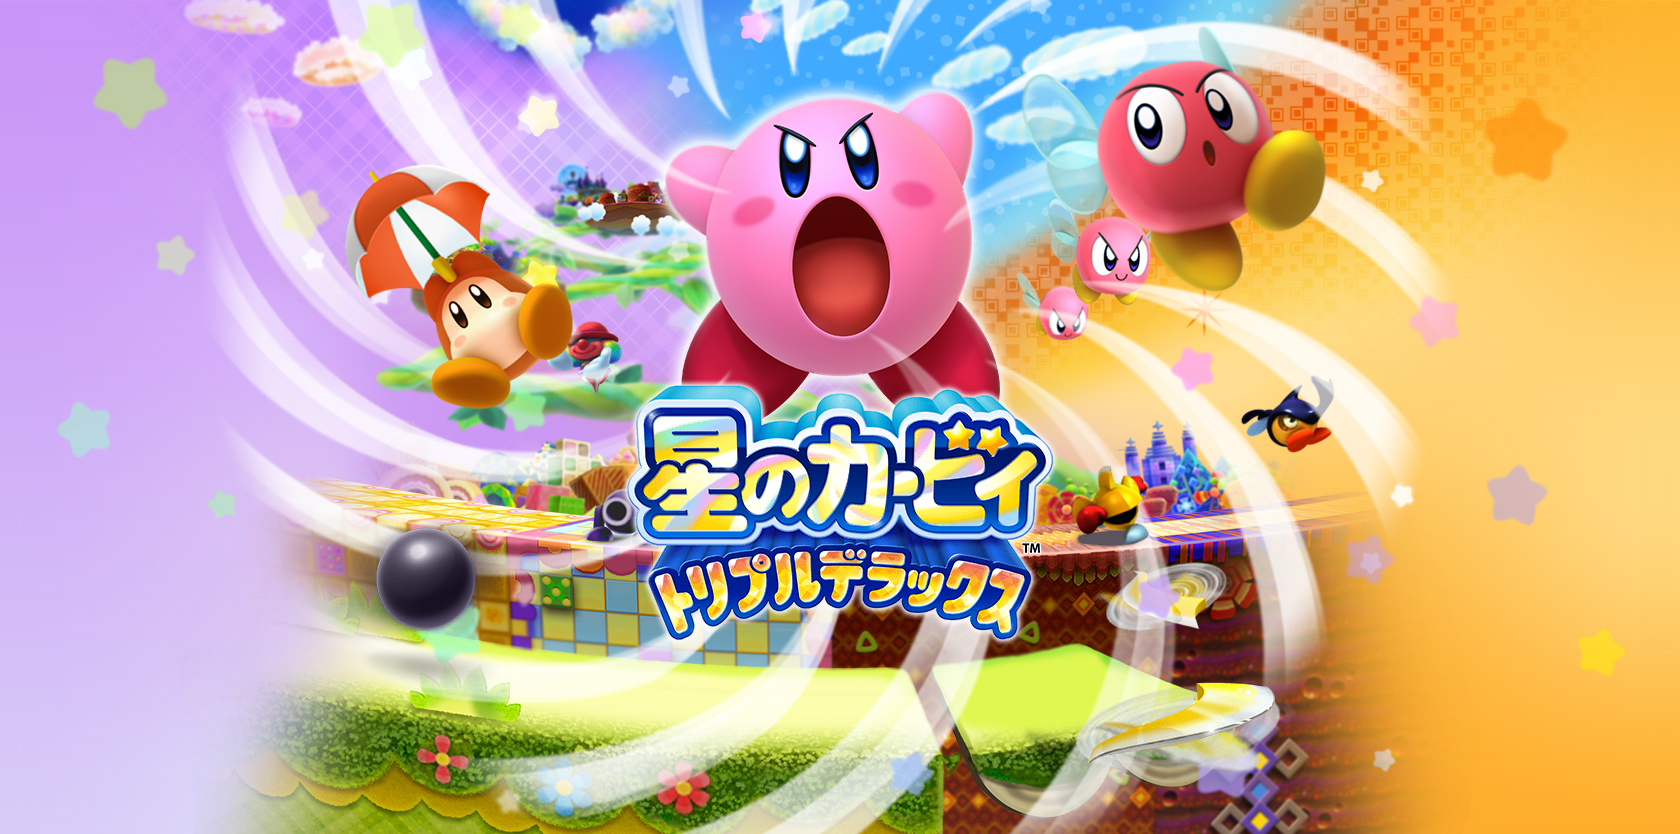 Kirby Triple Deluxe Video Games Wallpapers Kirby All Games Asian Artwork